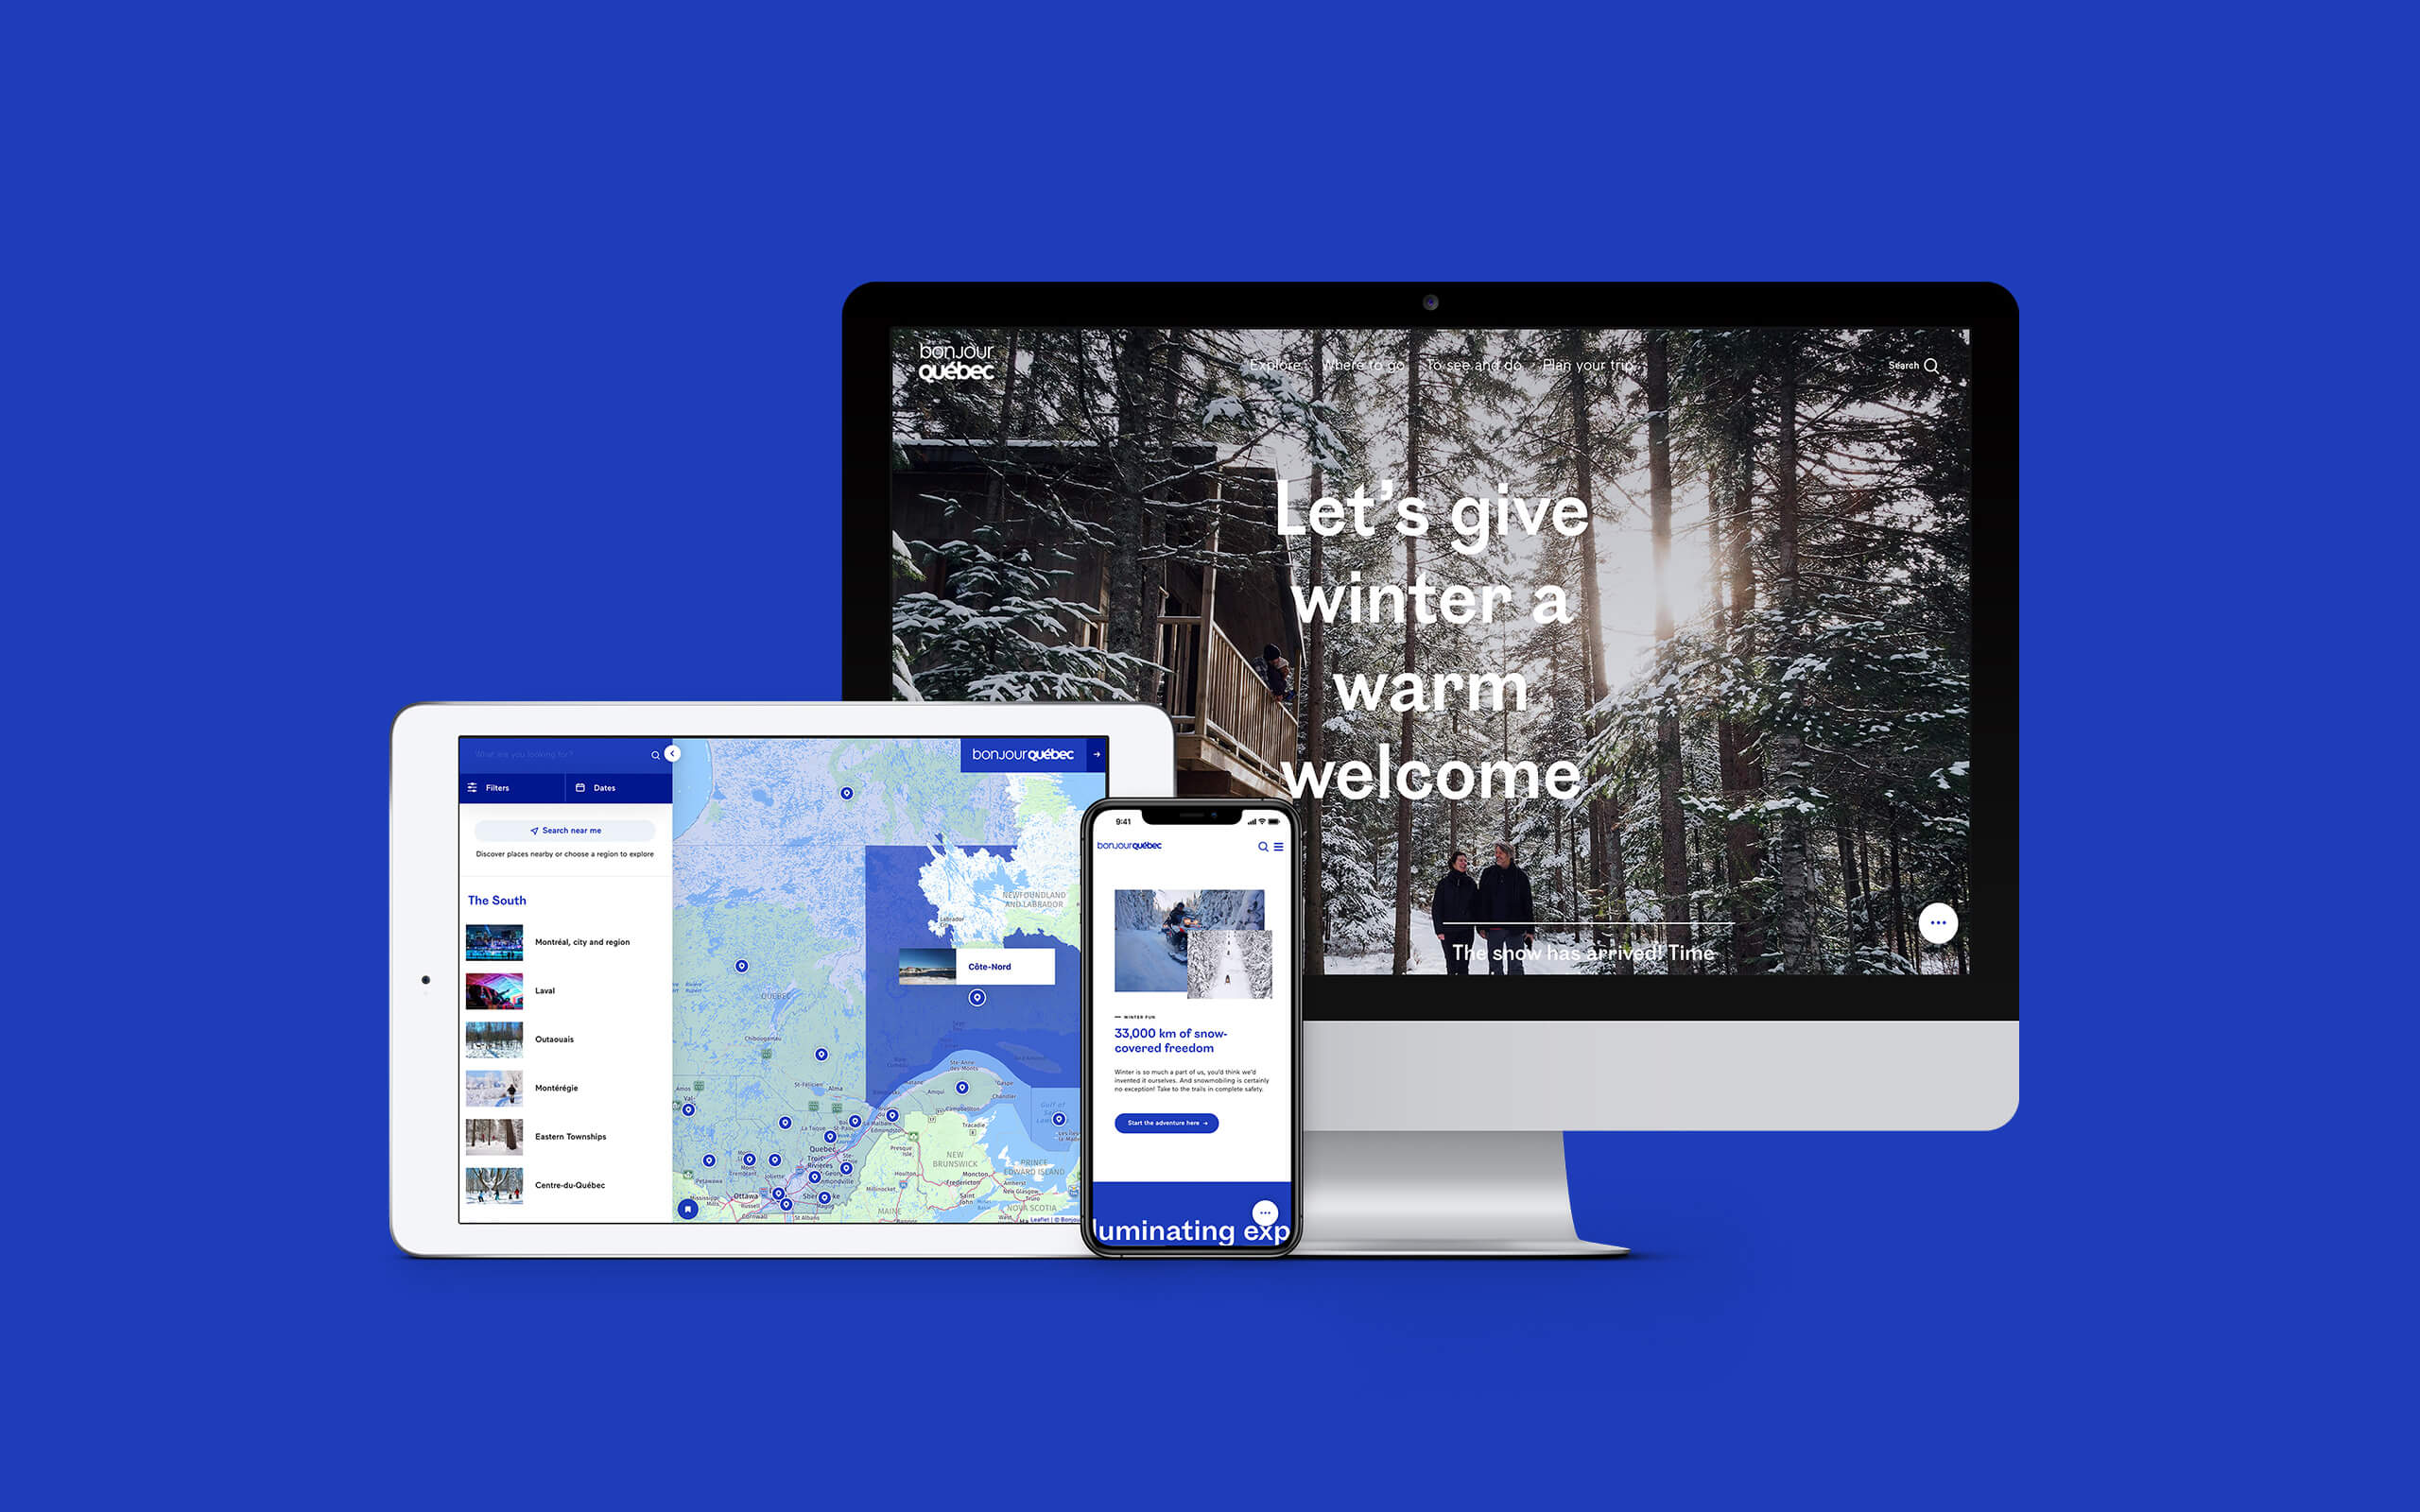 Showcase of the Bonjour Québec project and responsive design